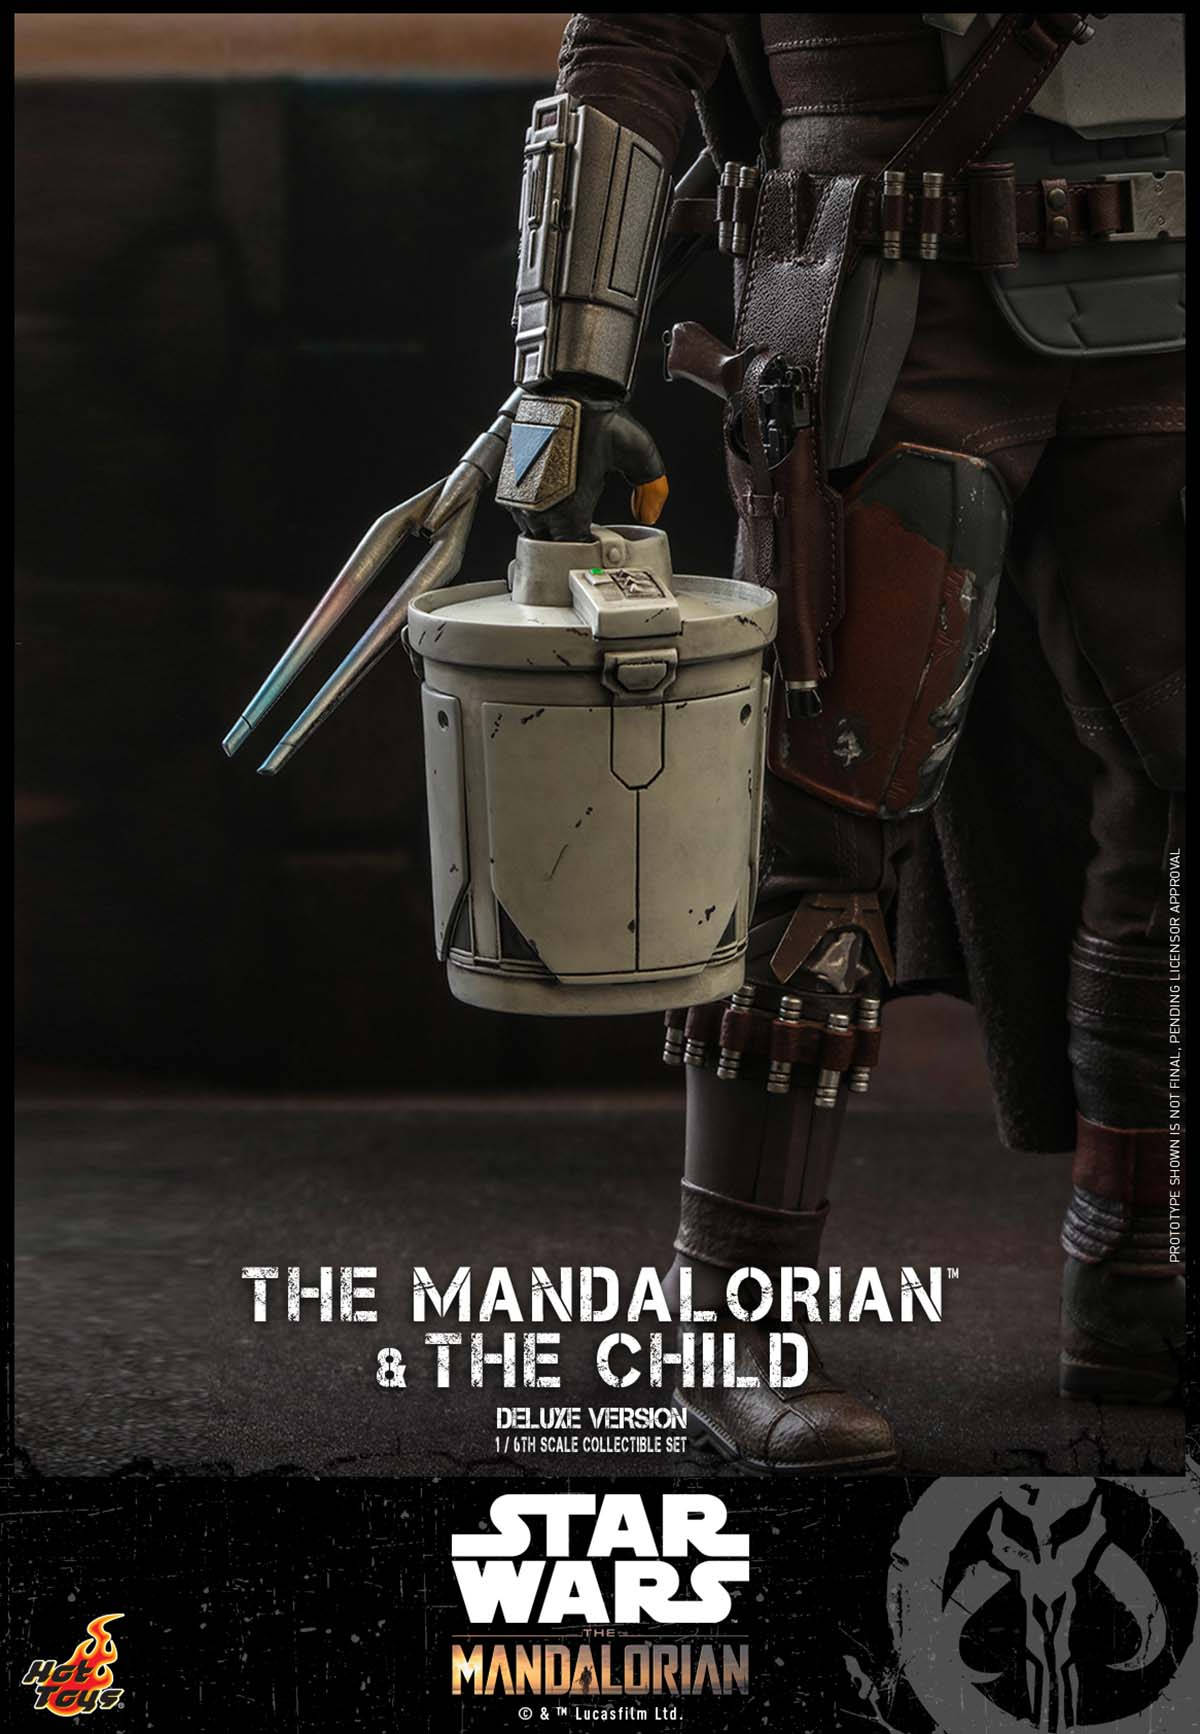 hot-toys-stm-mandalorian-and-child-collectible-set-deluxe_pr23